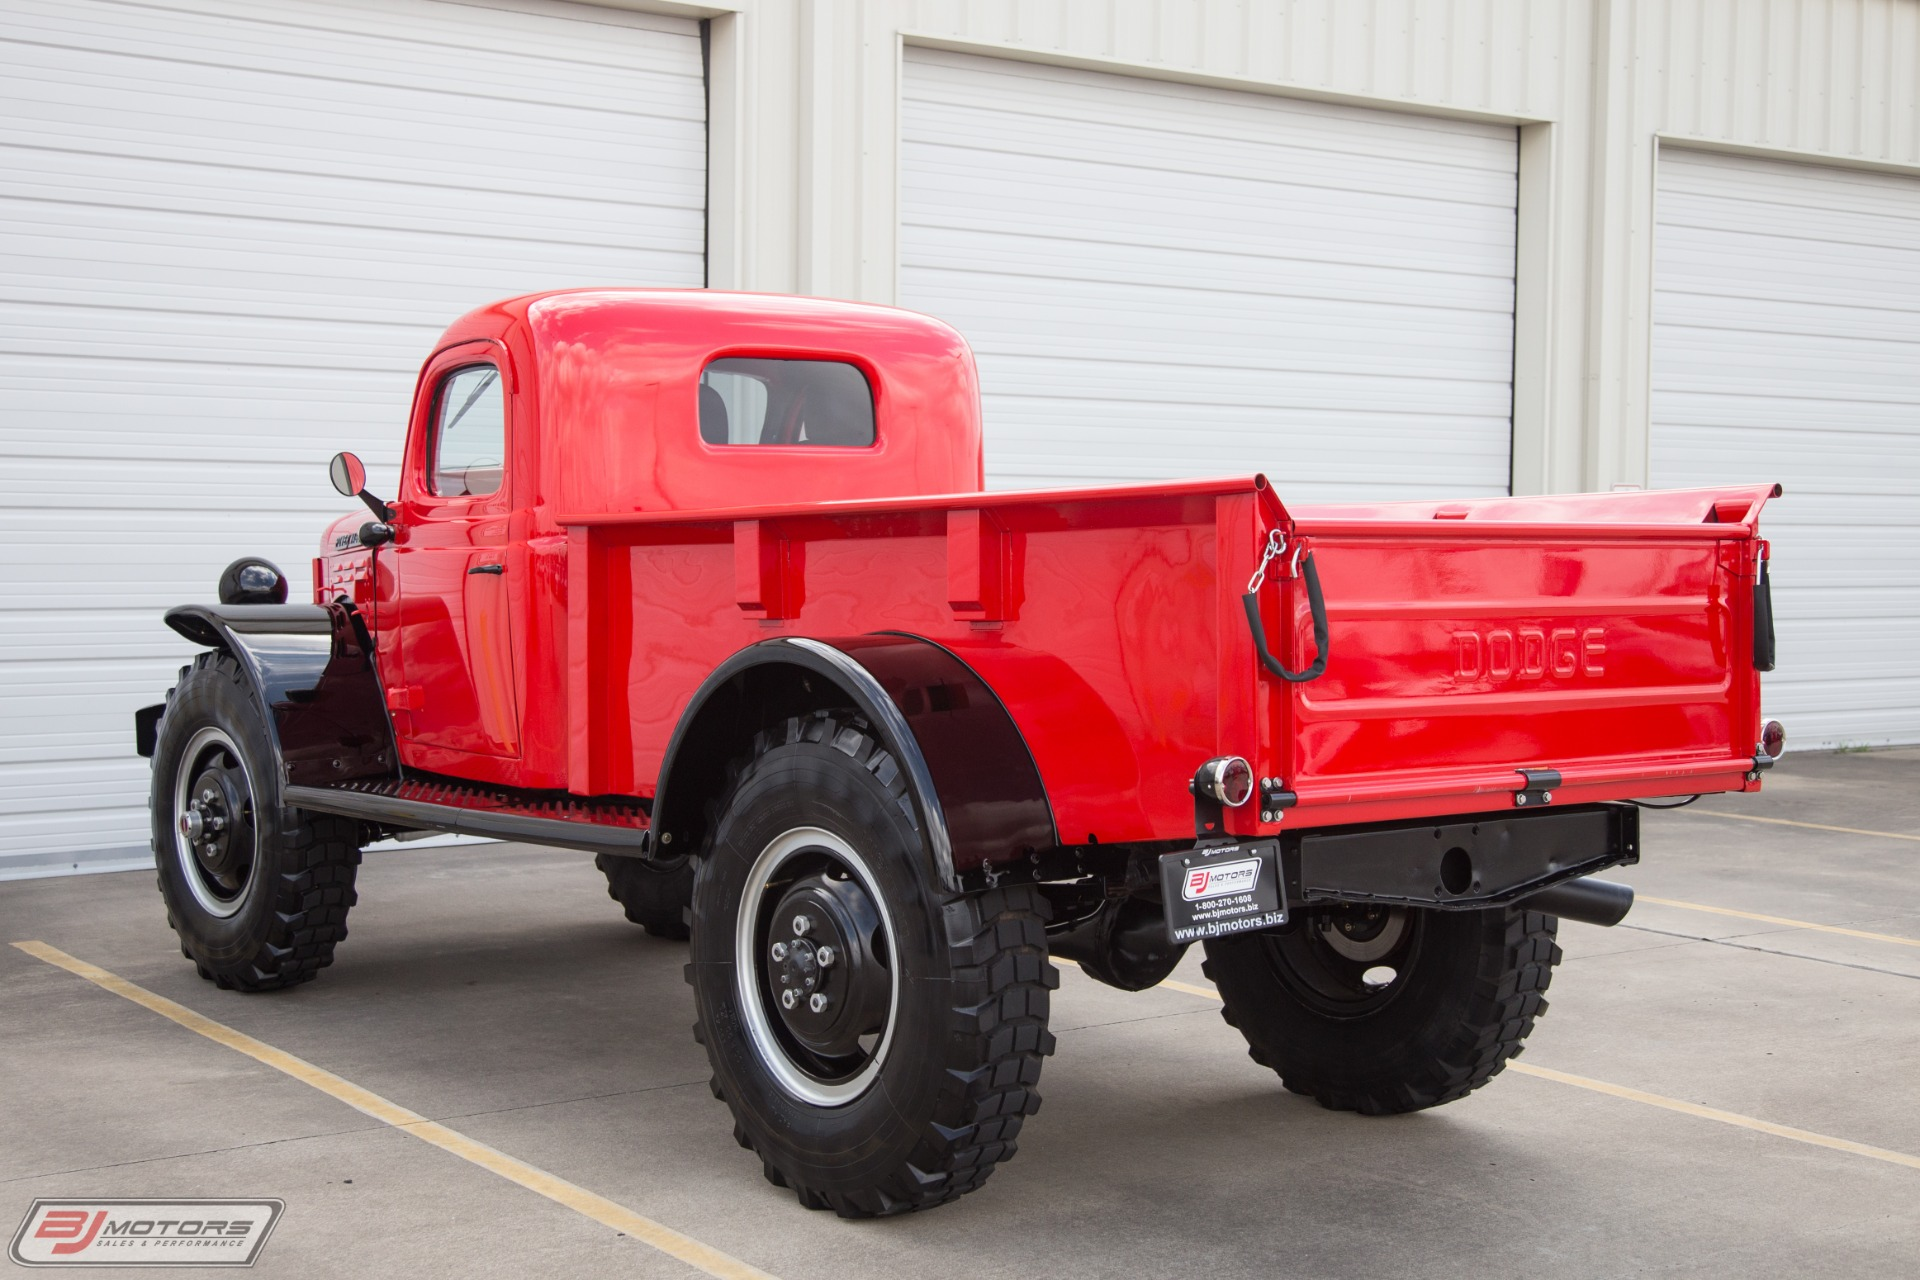 Used-1950-Dodge-Power-Wagon-Restored